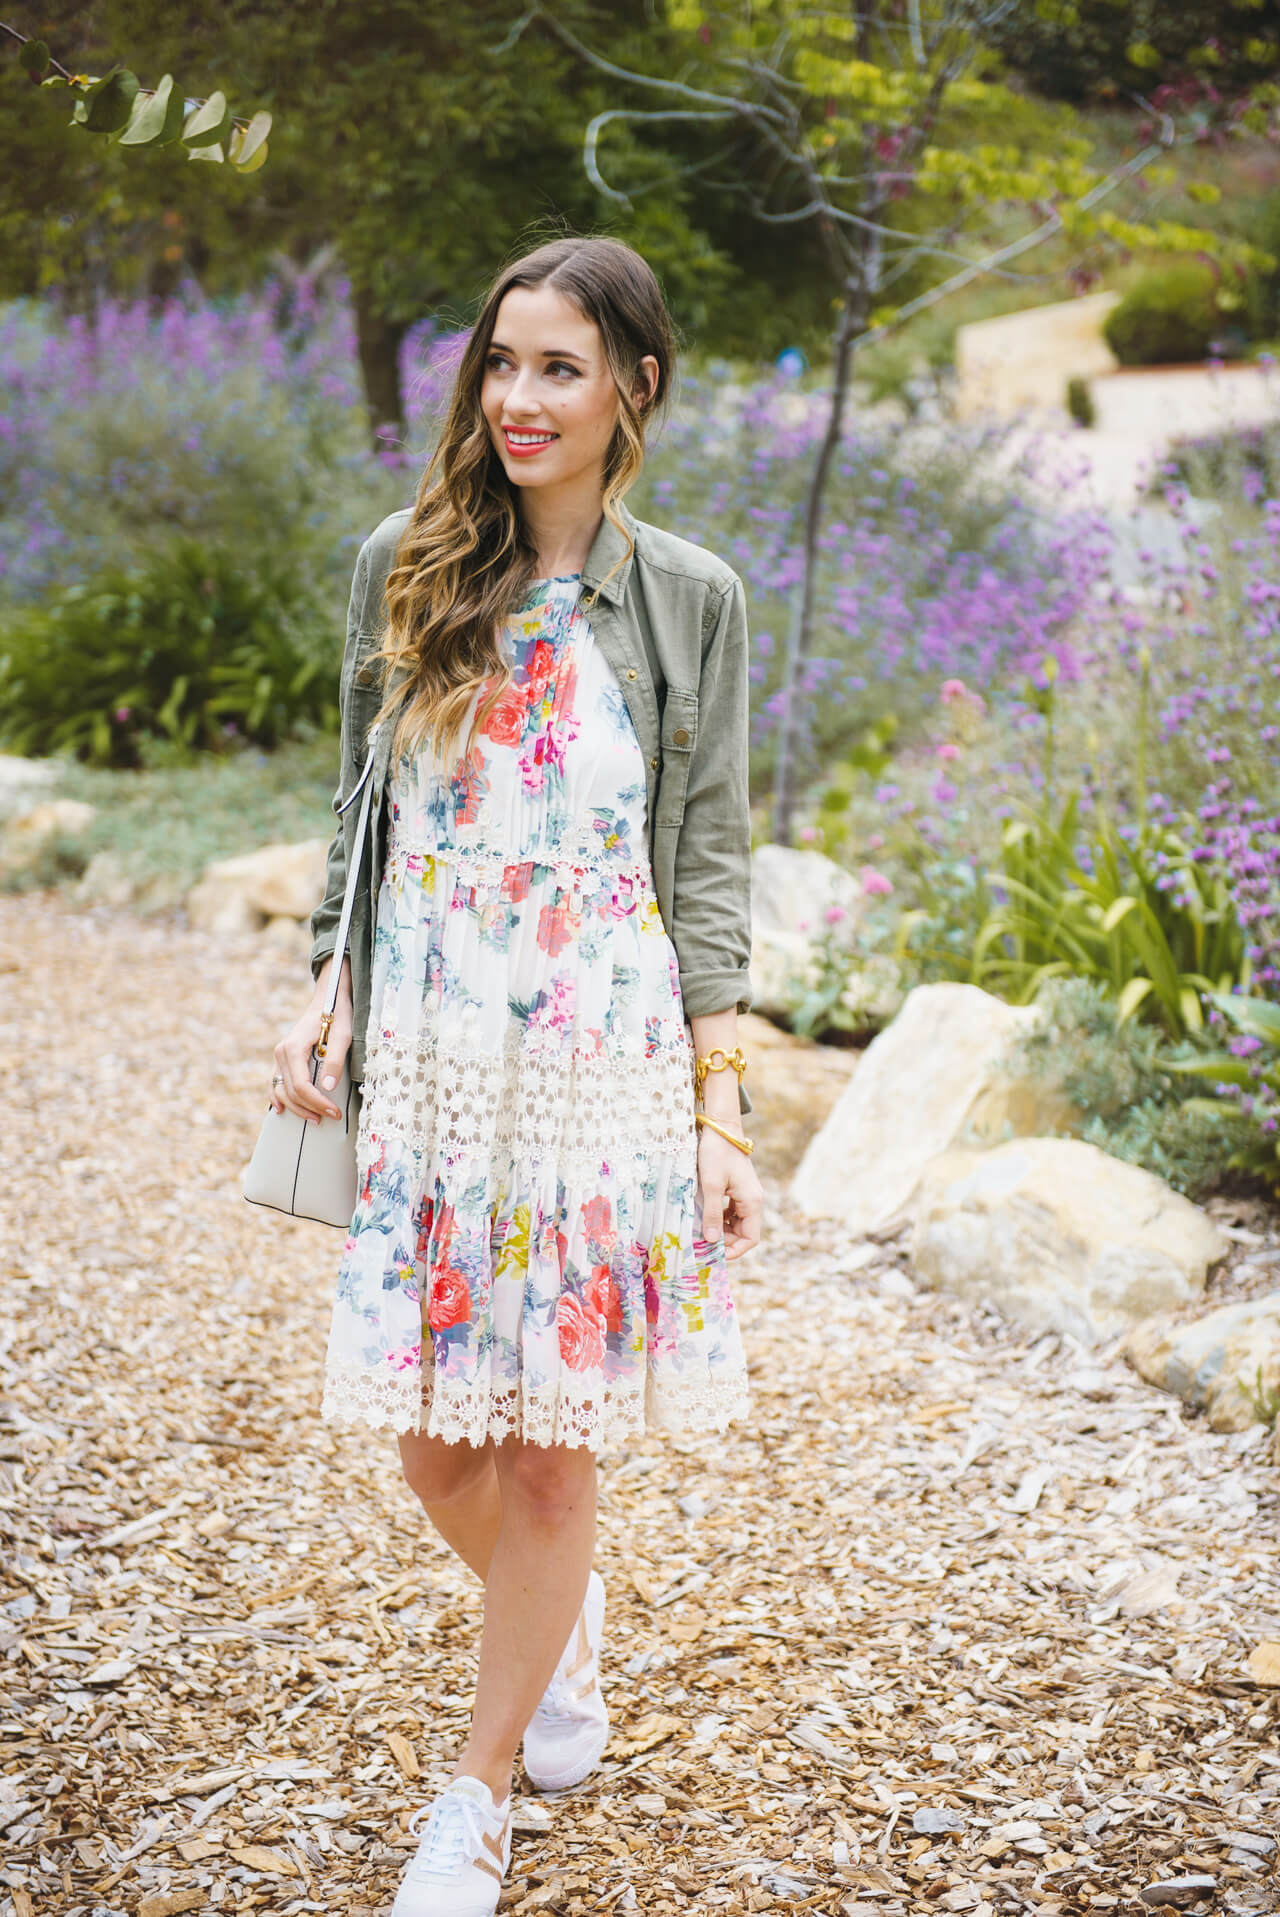 Spring outfit with floral dress and sneakers